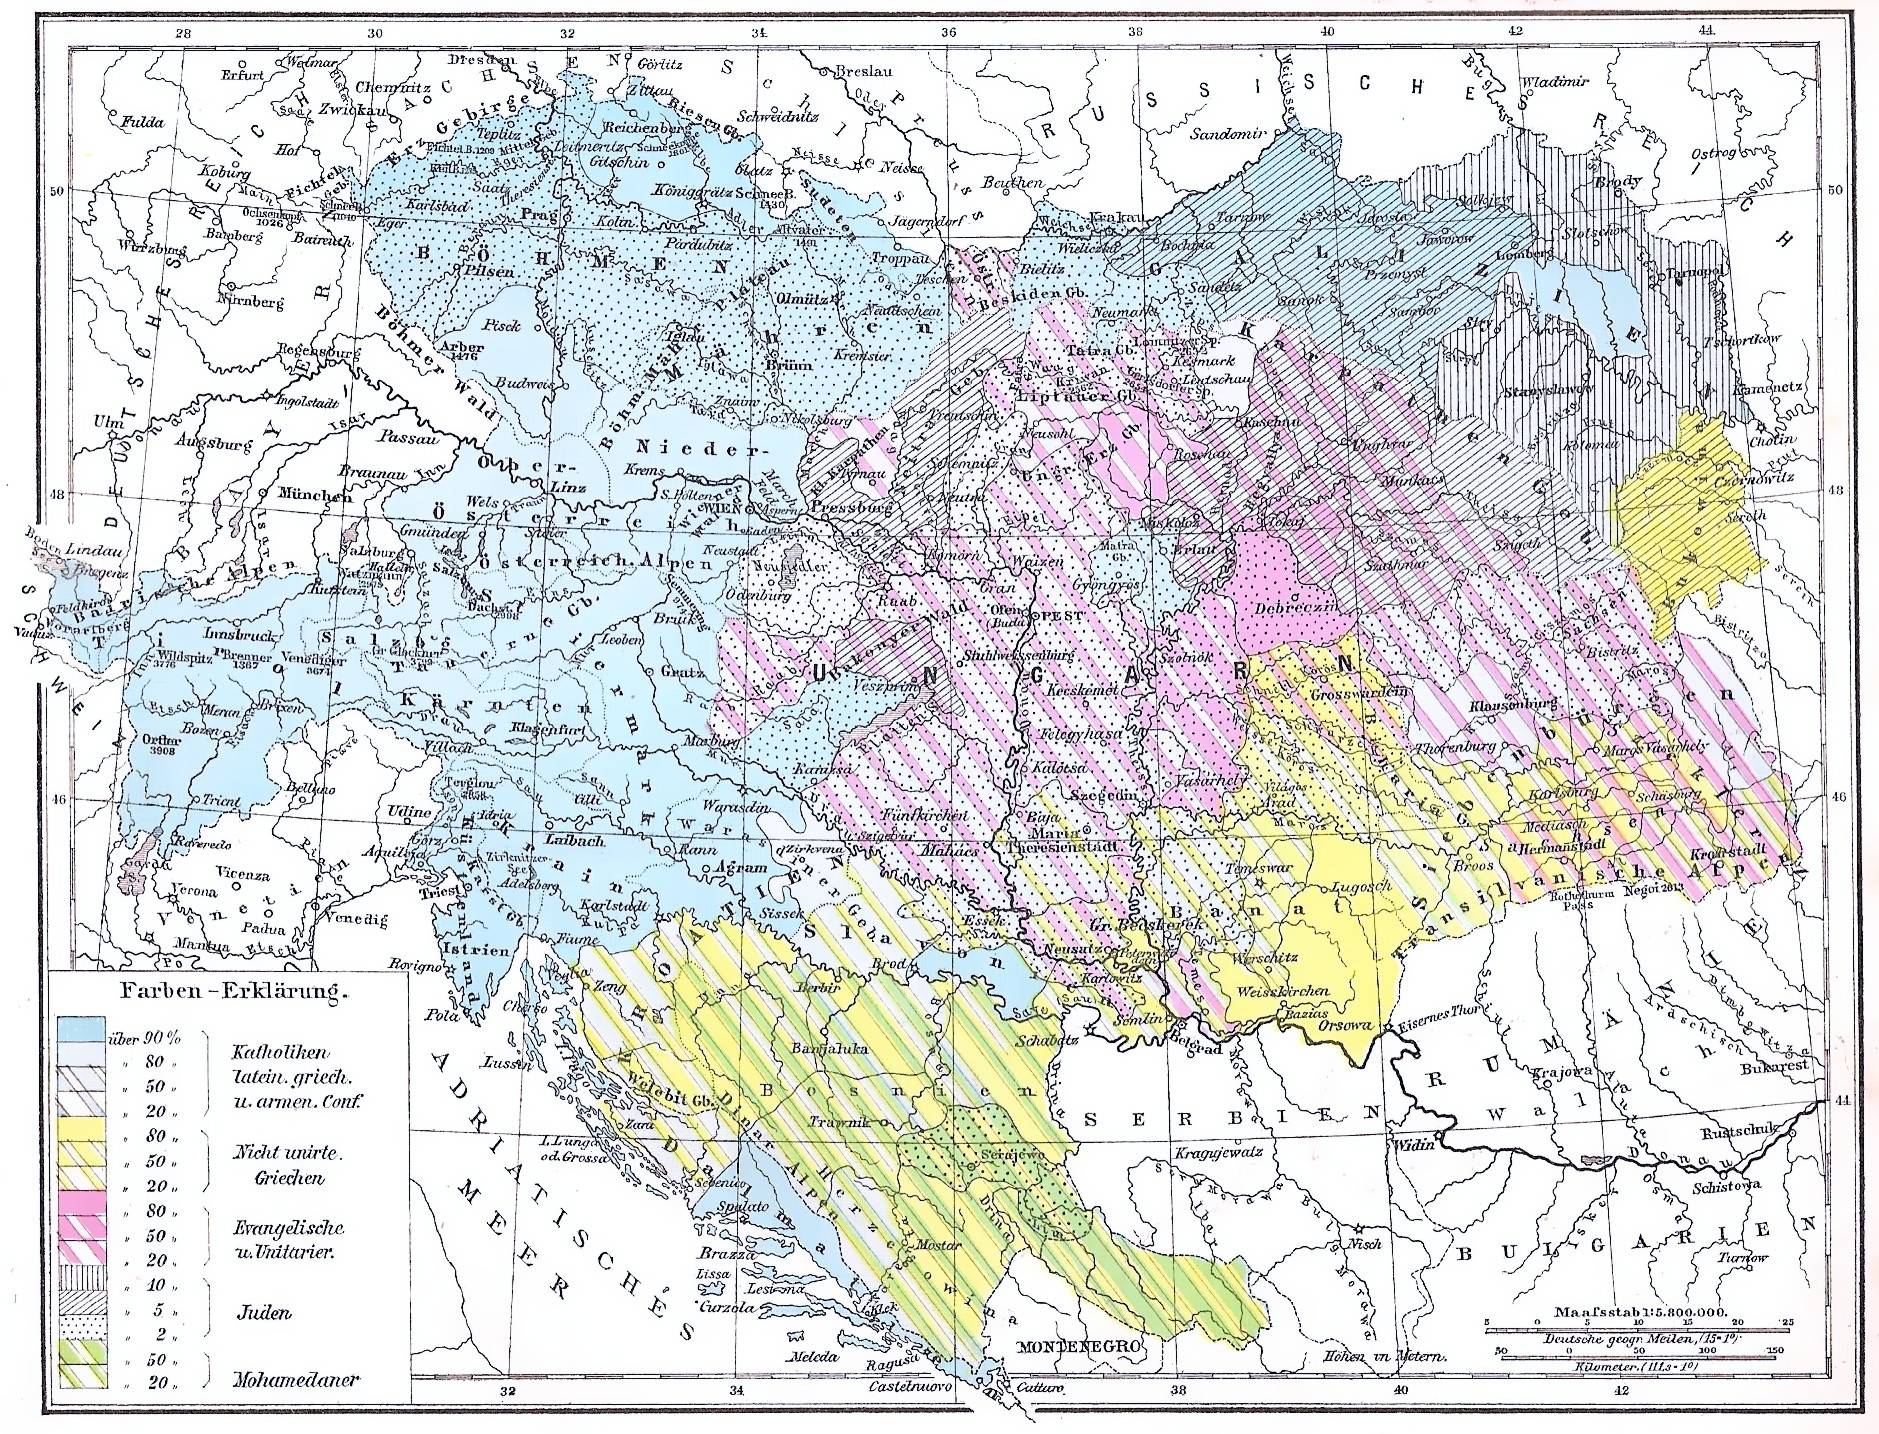 Ethnic And Religious Composition Of Austria-Hungary - Wikipedia throughout Map Of Germany Austria And Hungary